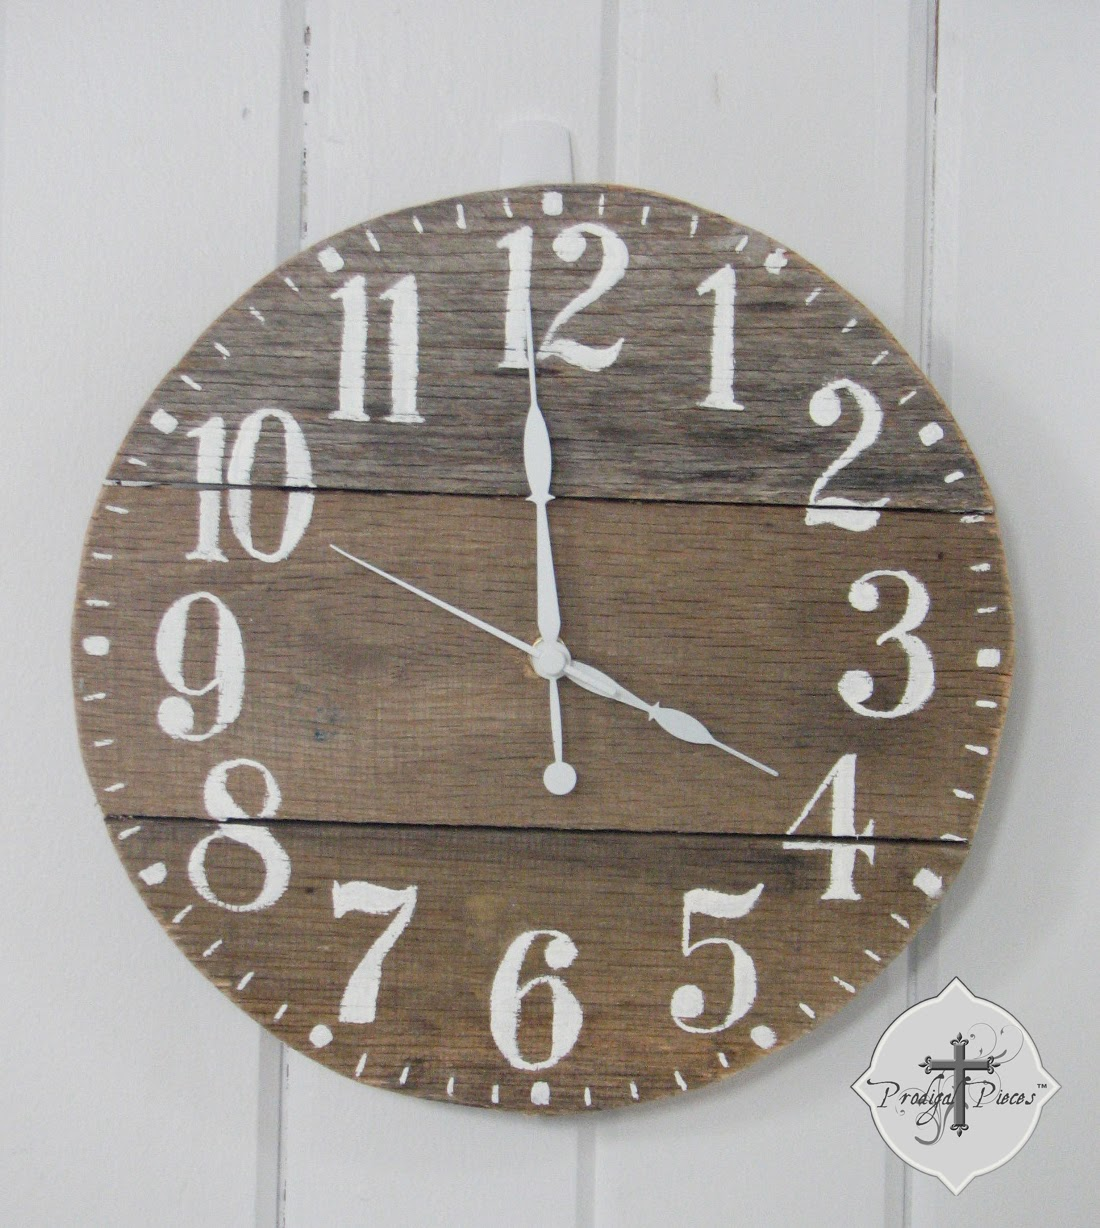 Hand-painted Pallet Clock via Prodigal Pieces